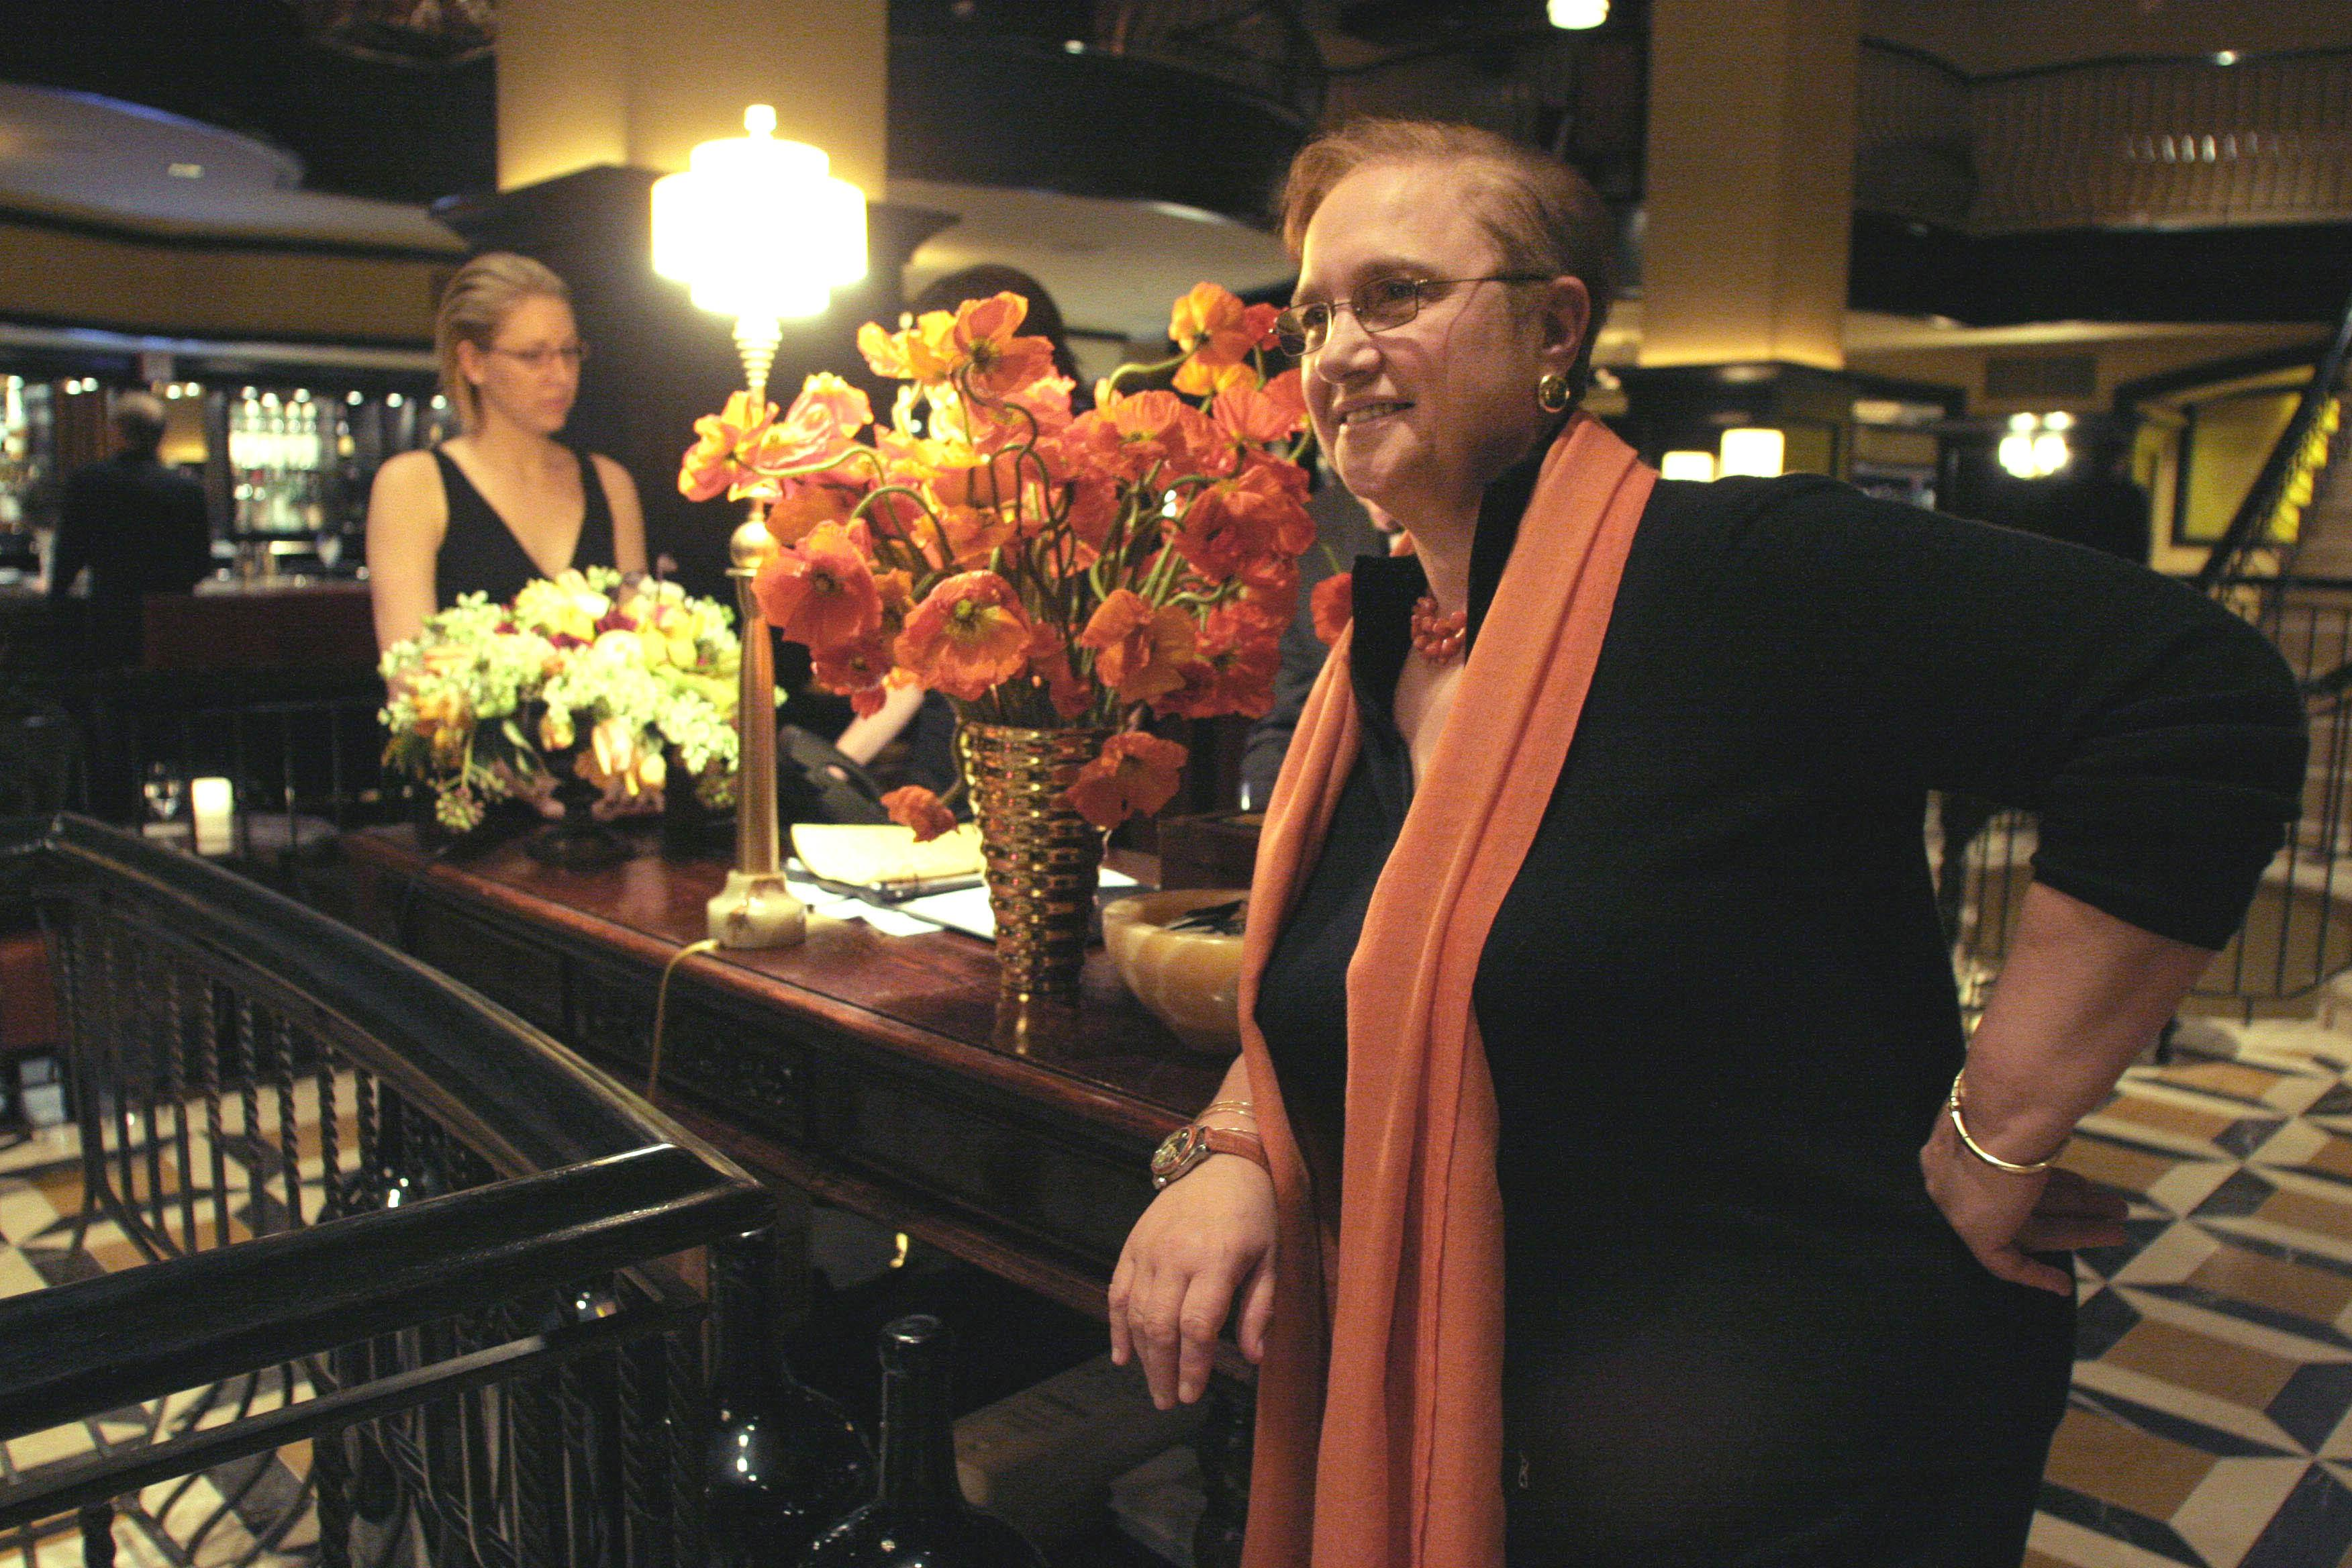 Chef Lidia Bastianich: Artisan movement is creating job opportunities